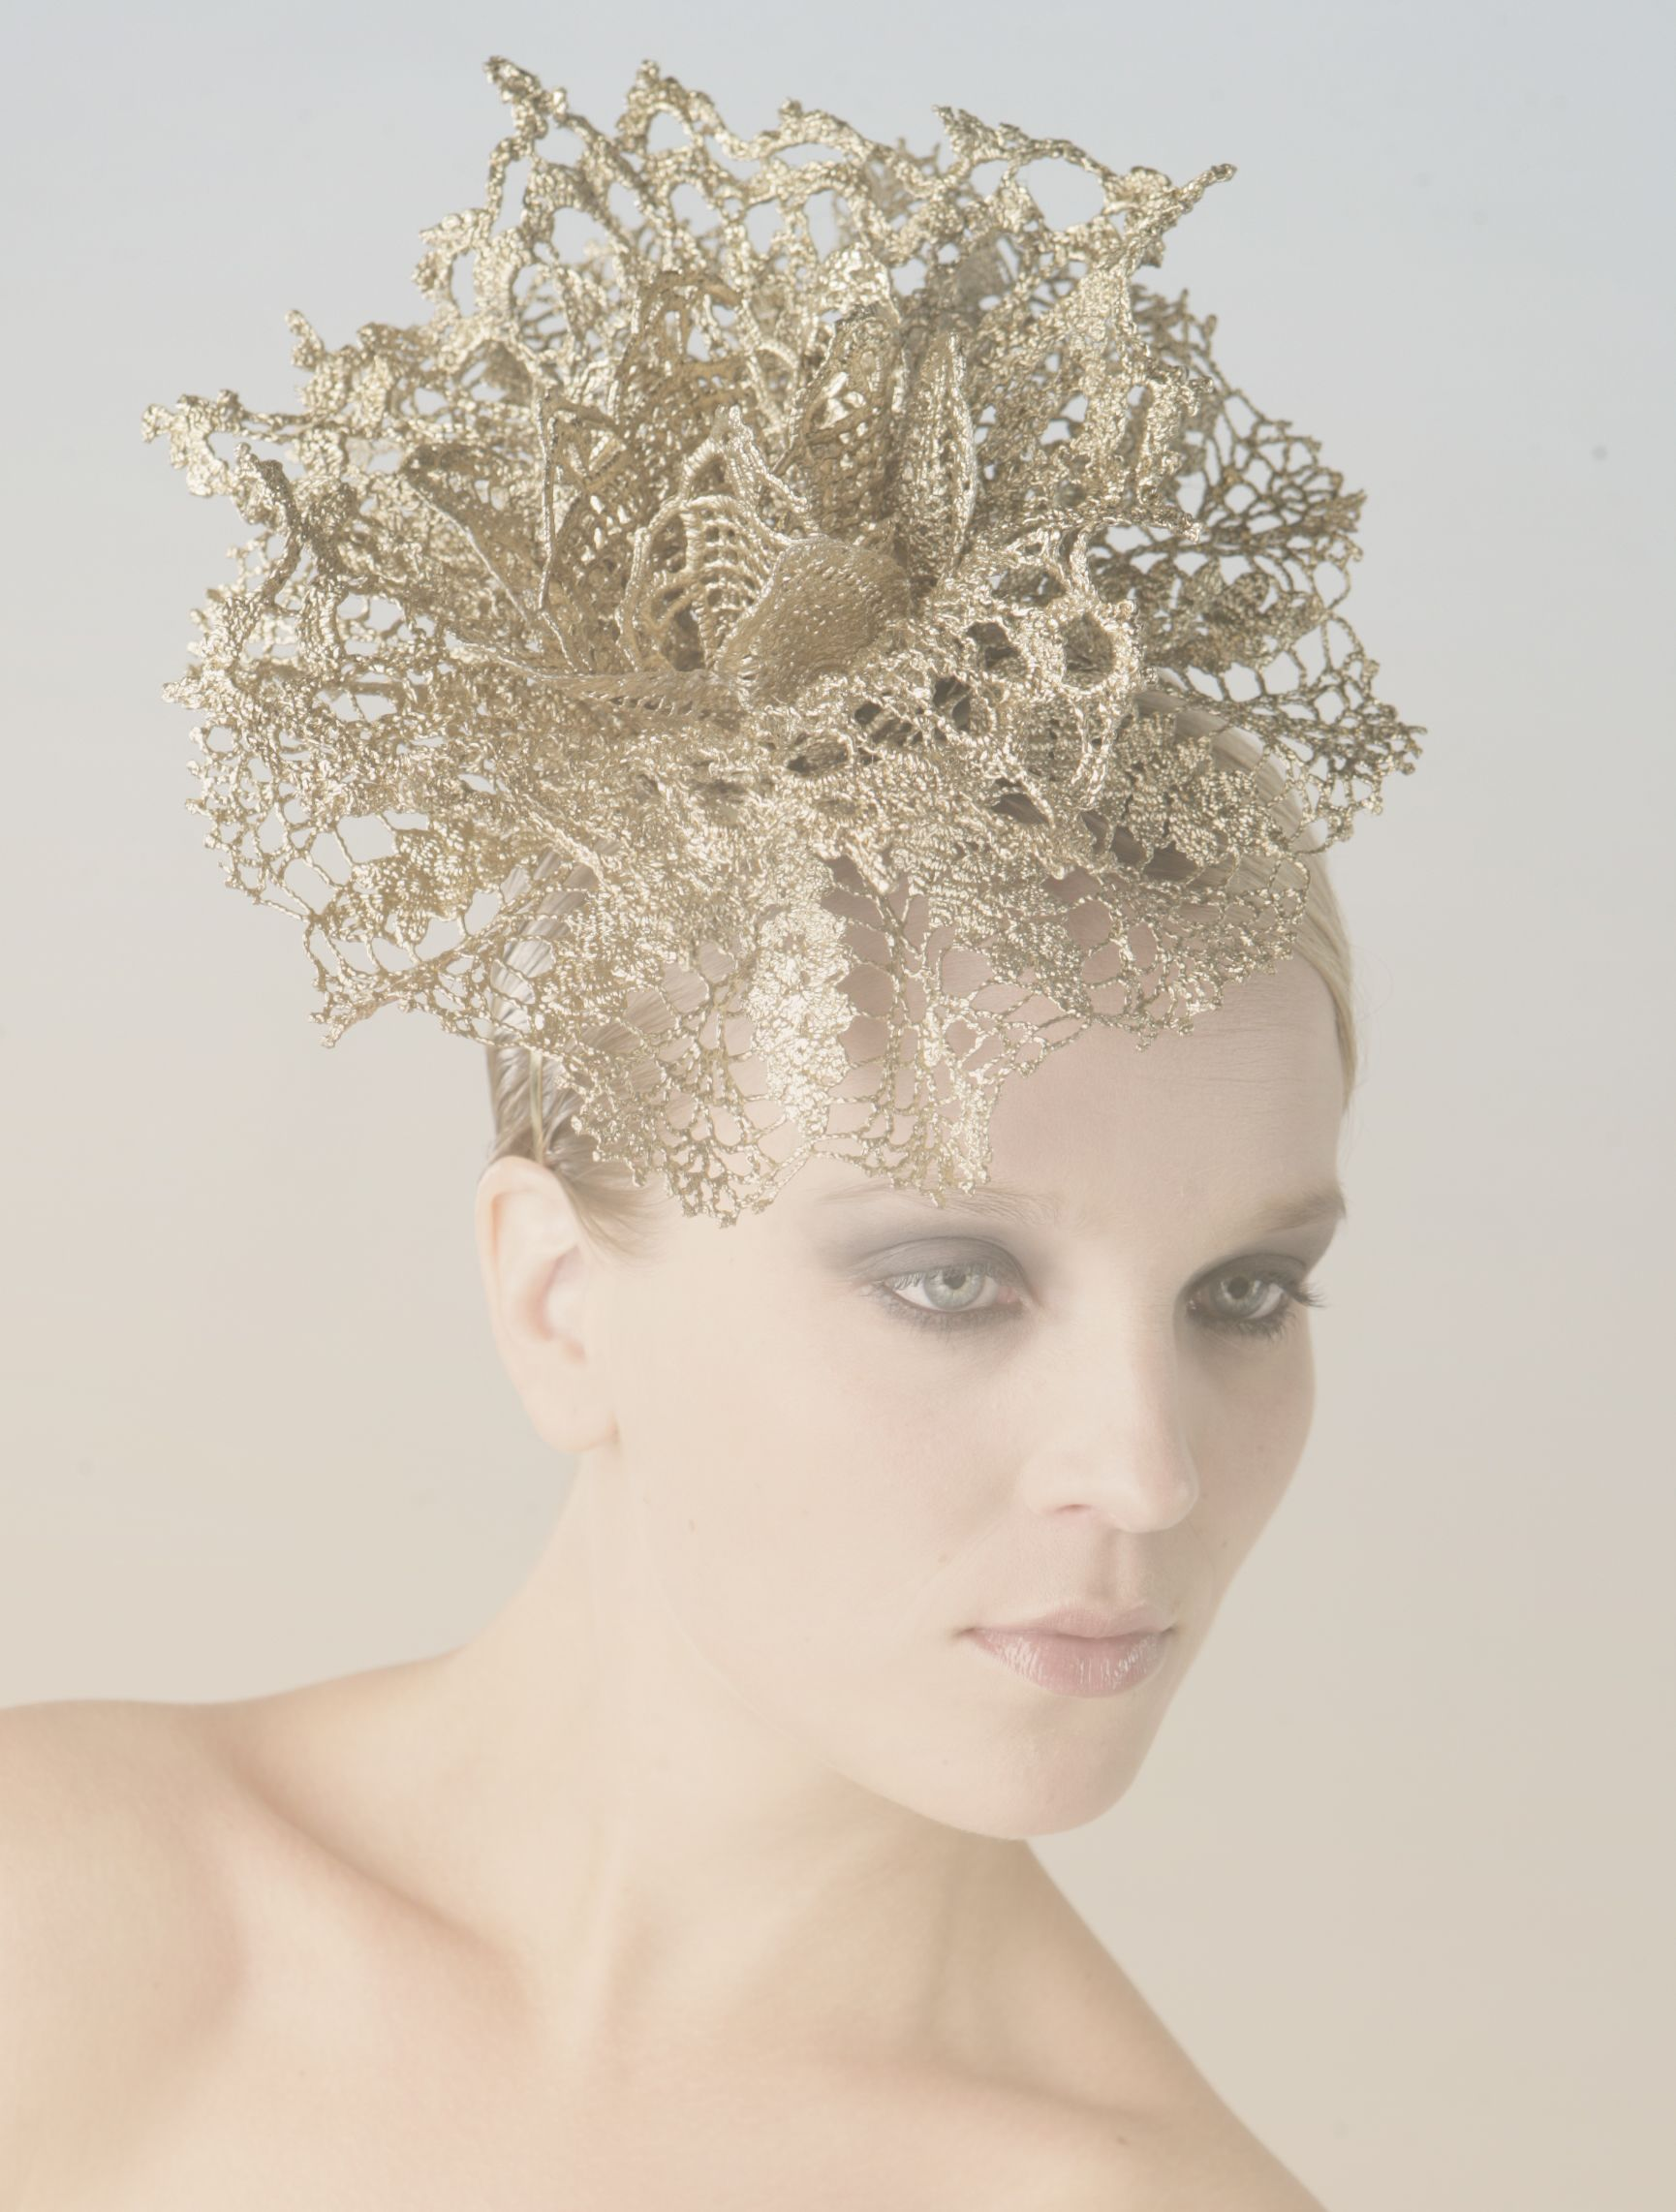 headpiece from www.parantparant.se